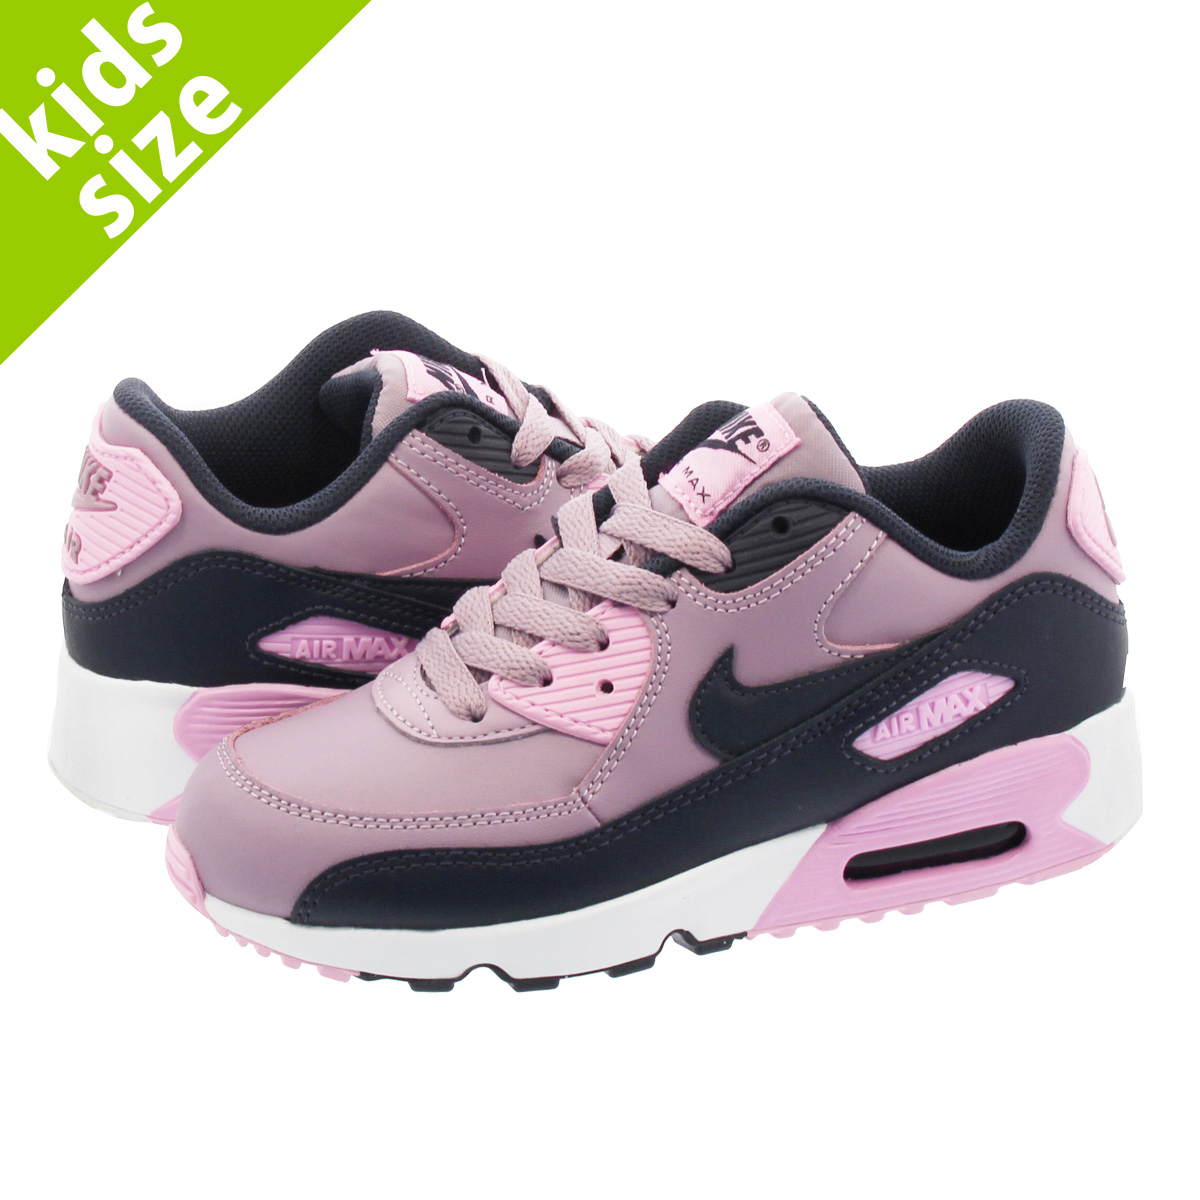 new style fa8f1 714c3 ... reduced nike air max 90 ltr ps kie ney amax 90 leather ps elemental  rose gridiron